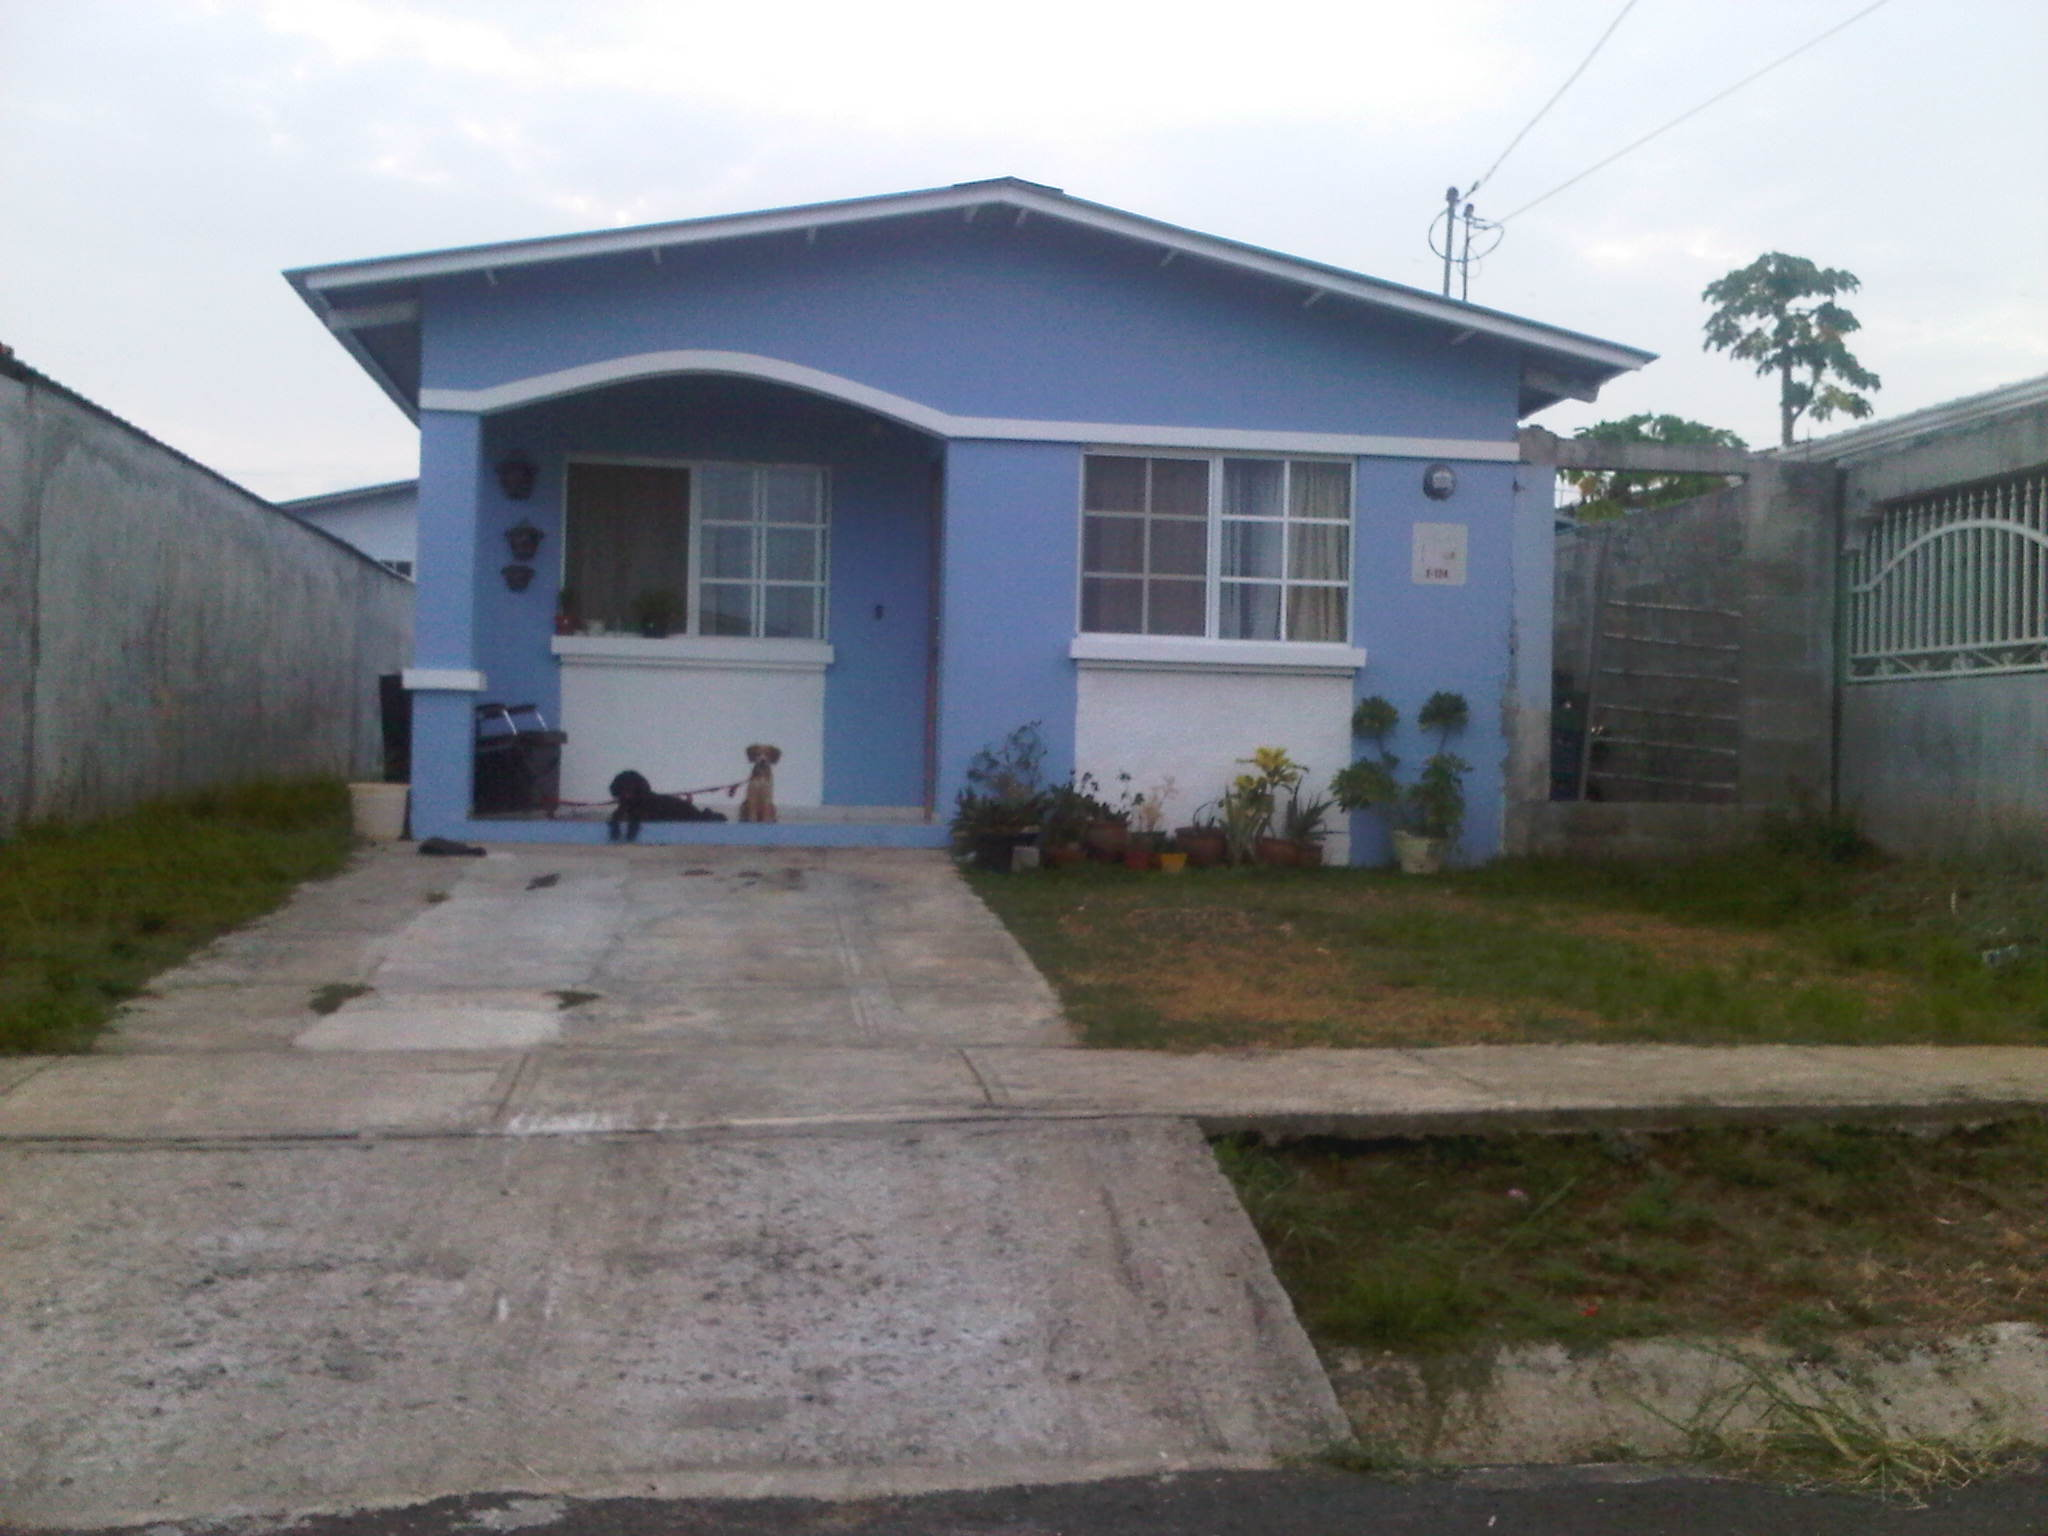 Casas baratas en panama pictures to pin on pinterest for Casetas economicas